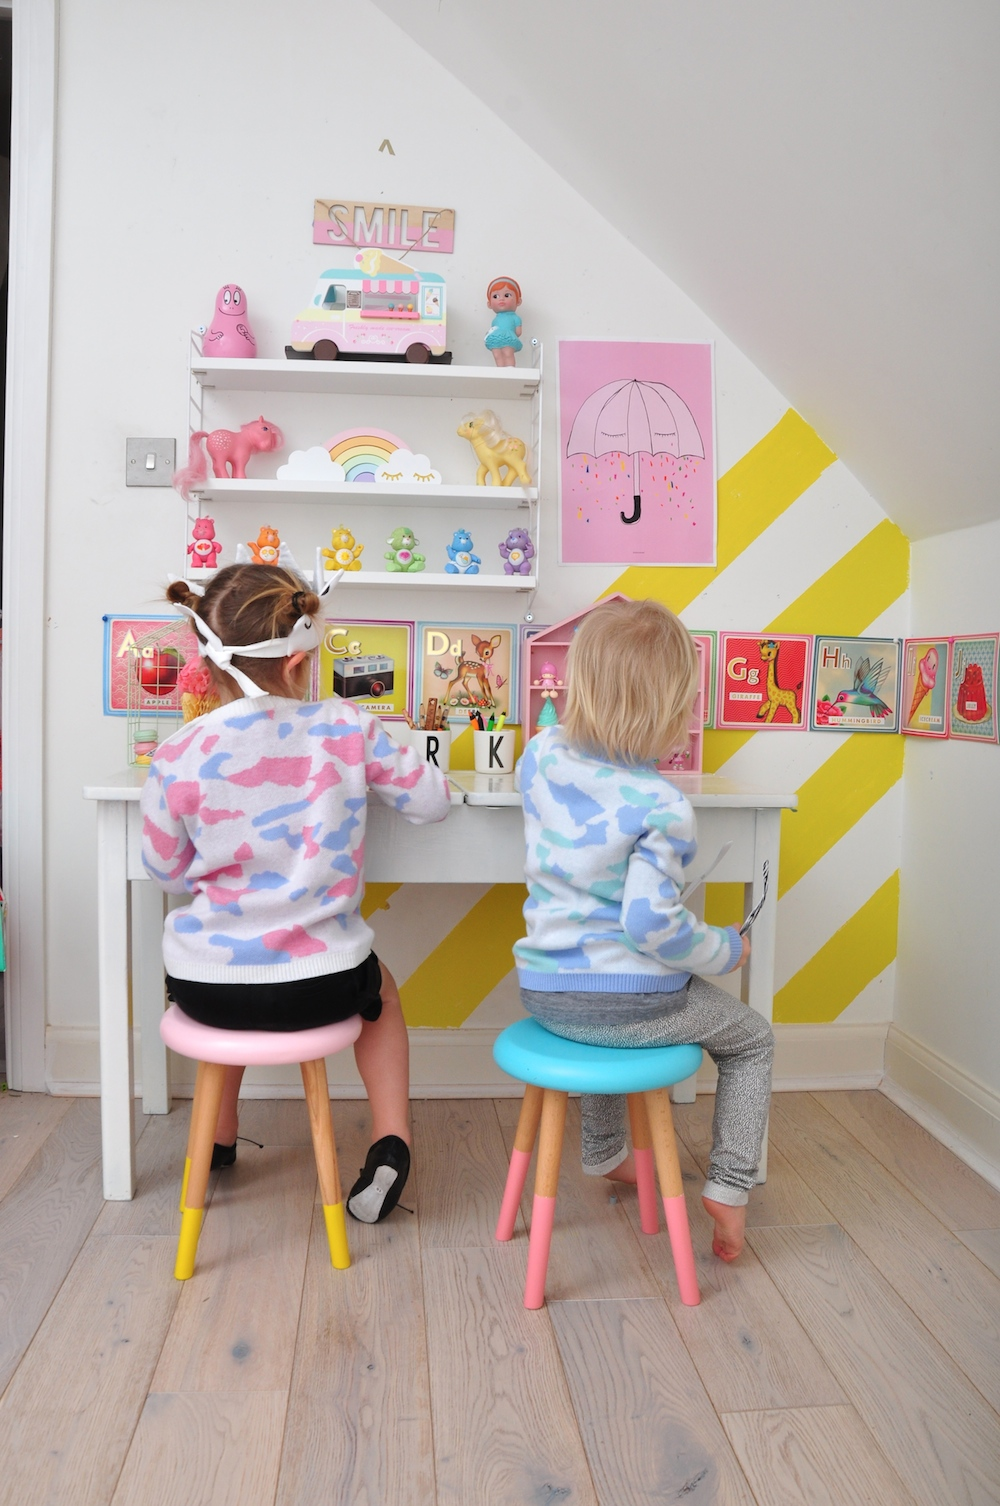 Chloe_thurston_kids_interior